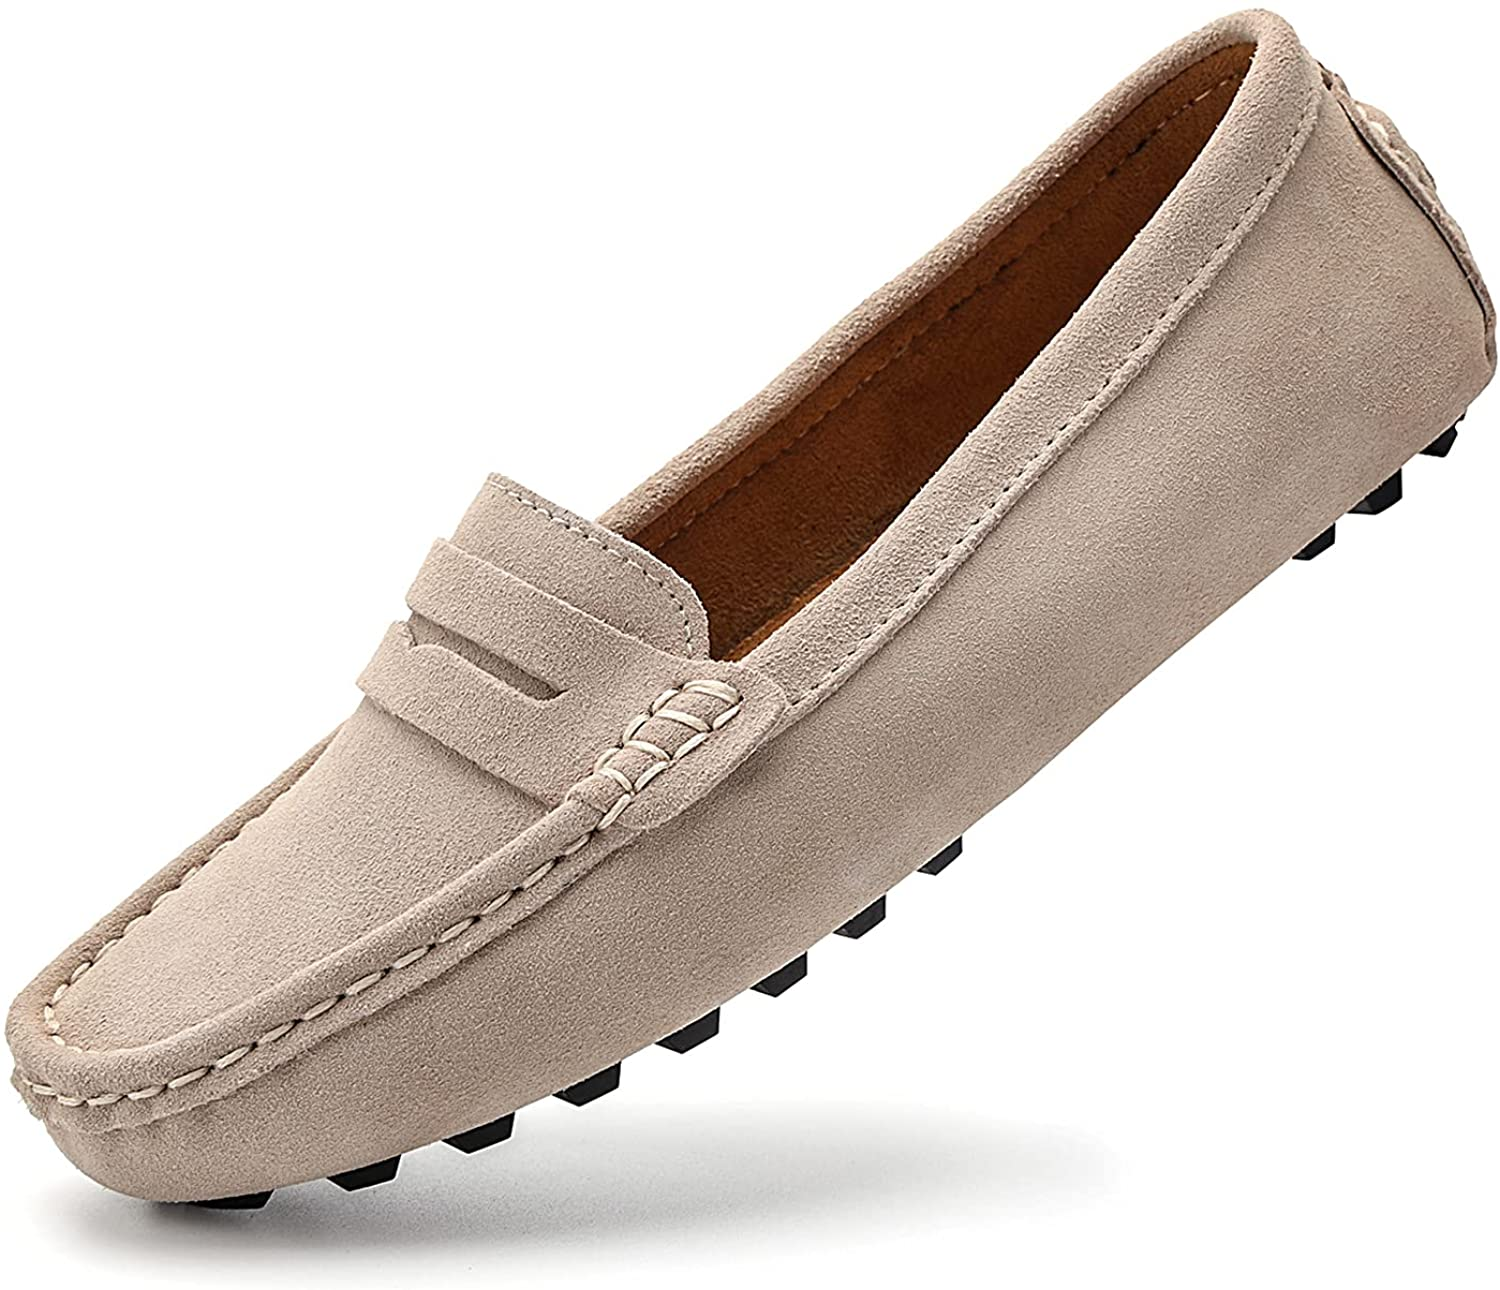 BEAUSEEN Opening large release sale Women's Comfortable Suede Slip-on Inventory cleanup selling sale Loafer Penny Leather